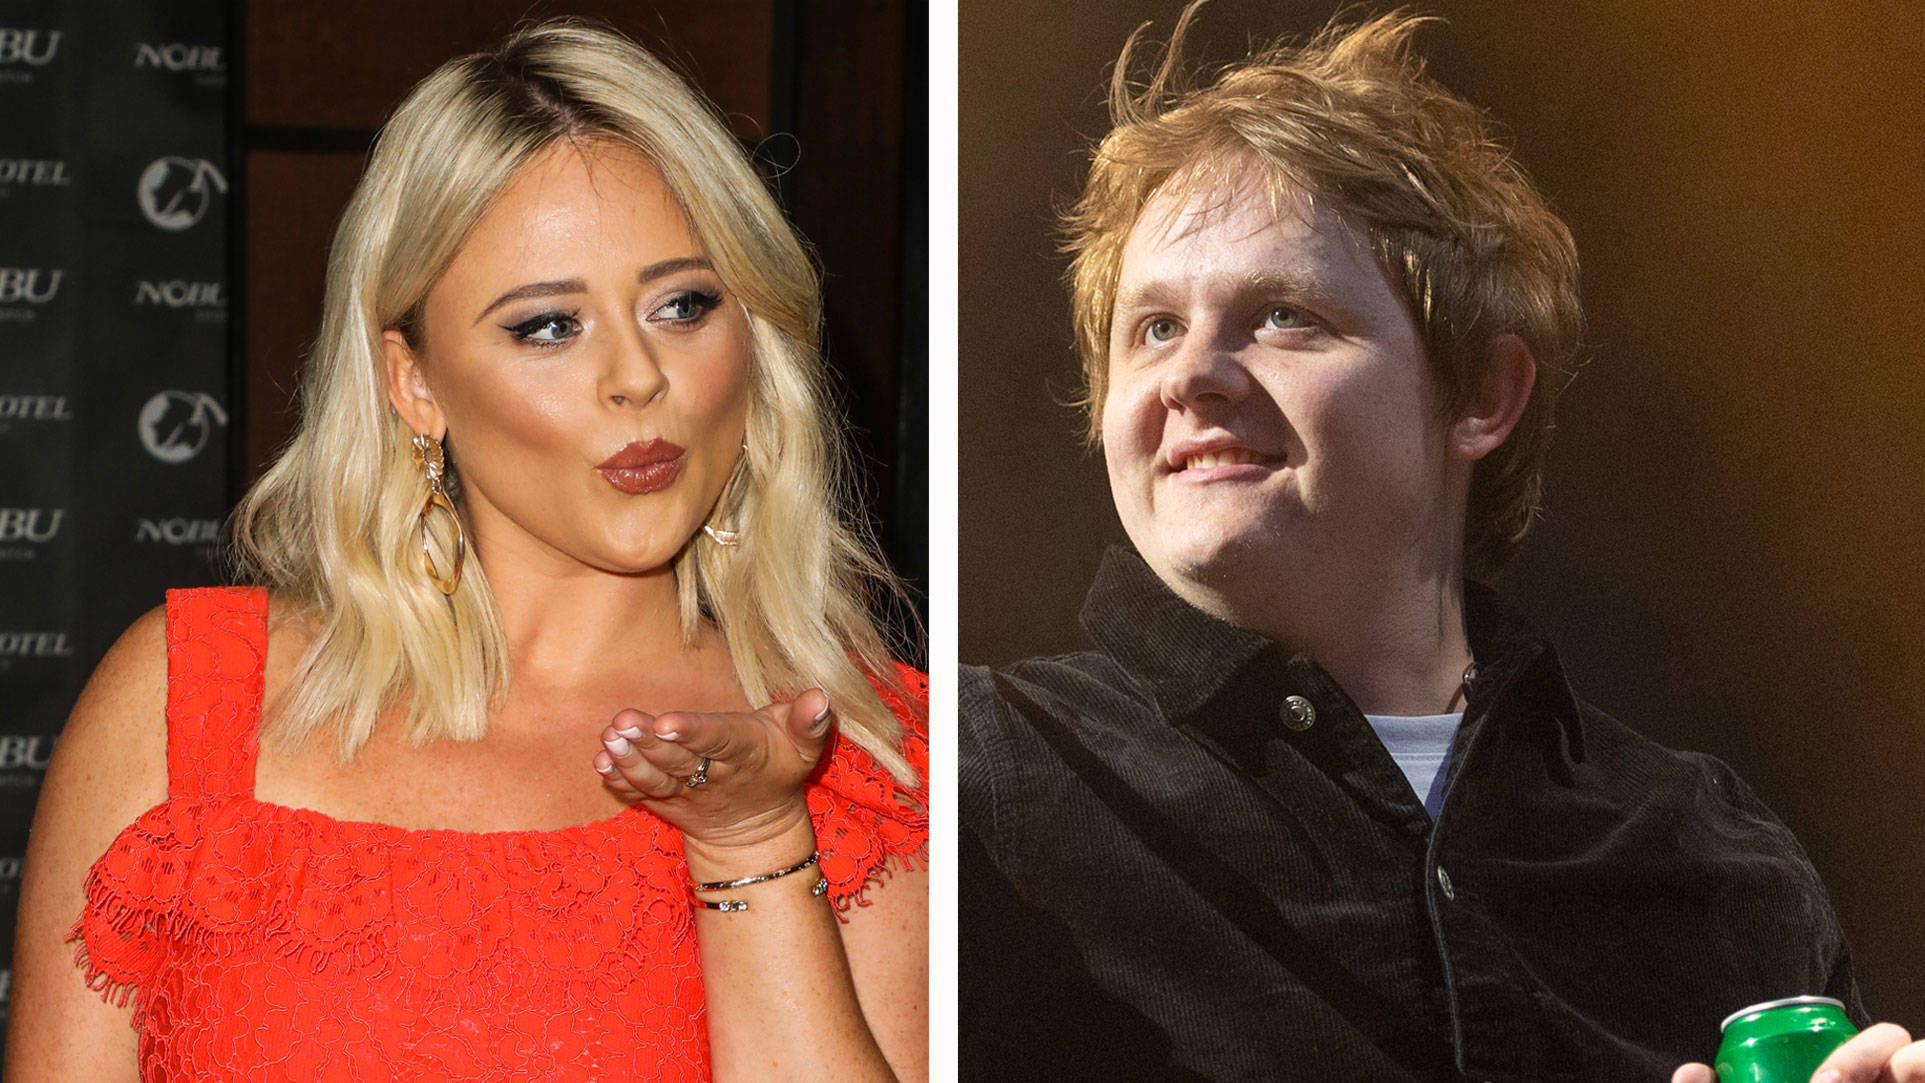 Emily Atack asks Lewis Capaldi if they're twins with selfie photo